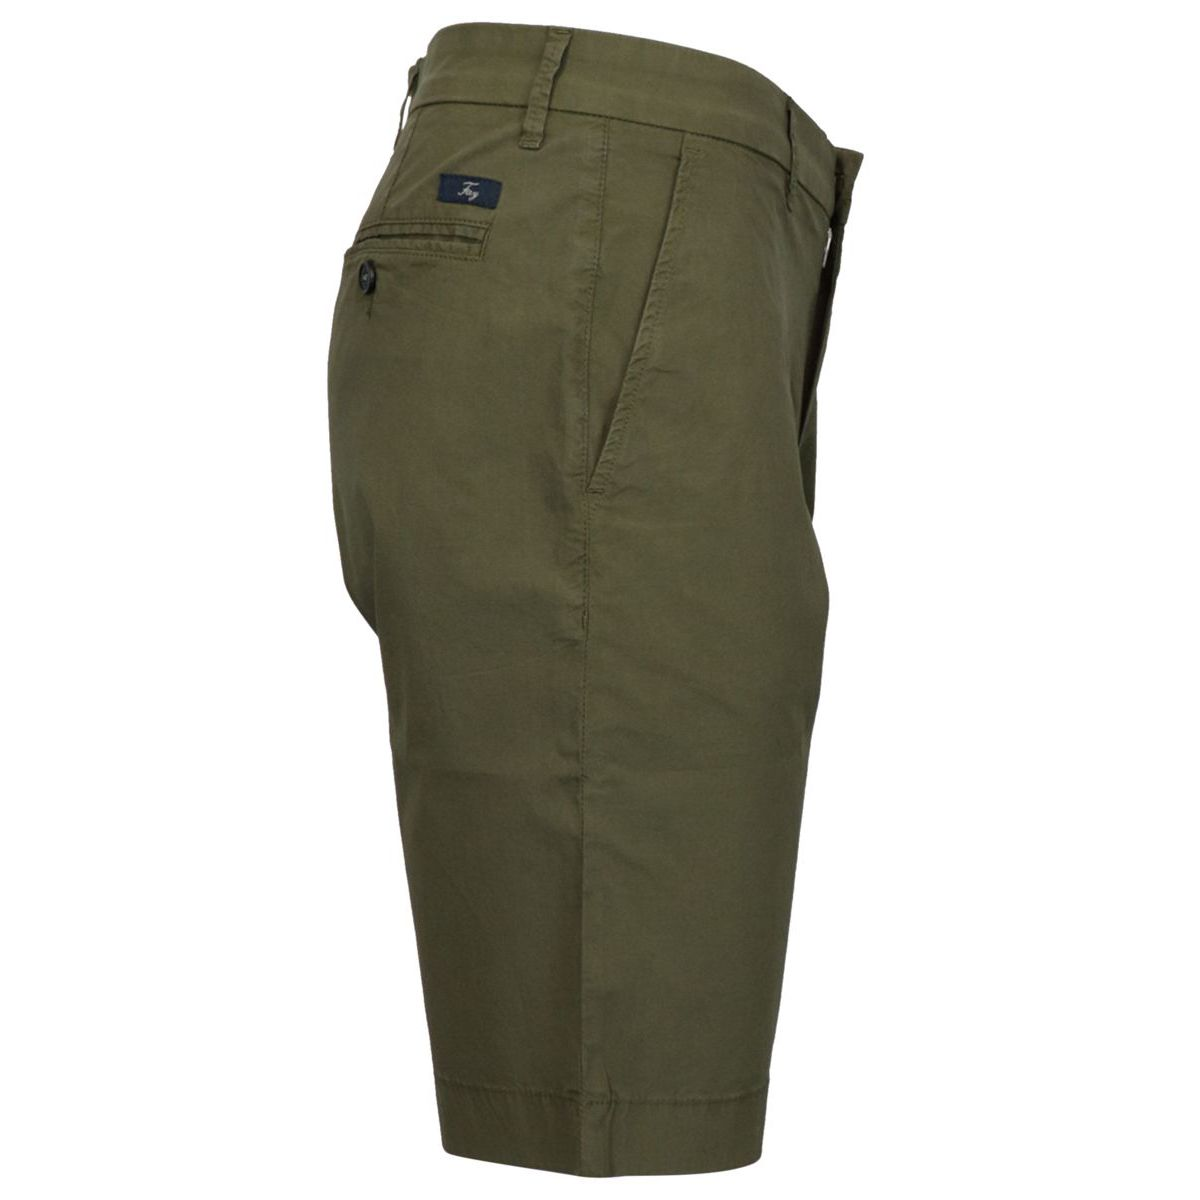 Garment-dyed cotton CHINO shorts Olive Fay